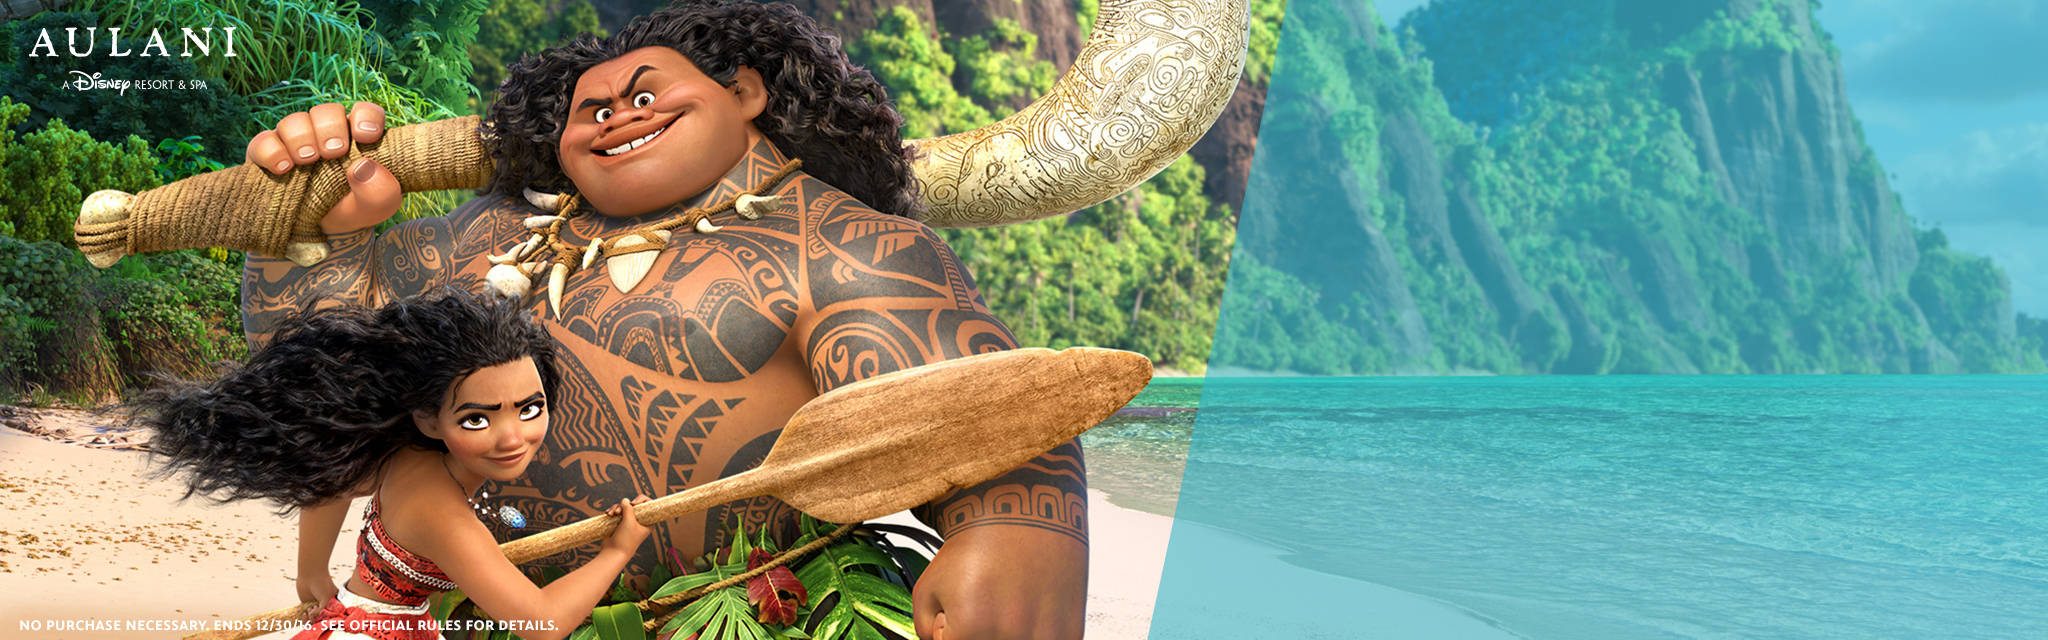 Moana - Aulani Resort Getaway Sweepstakes - Hero